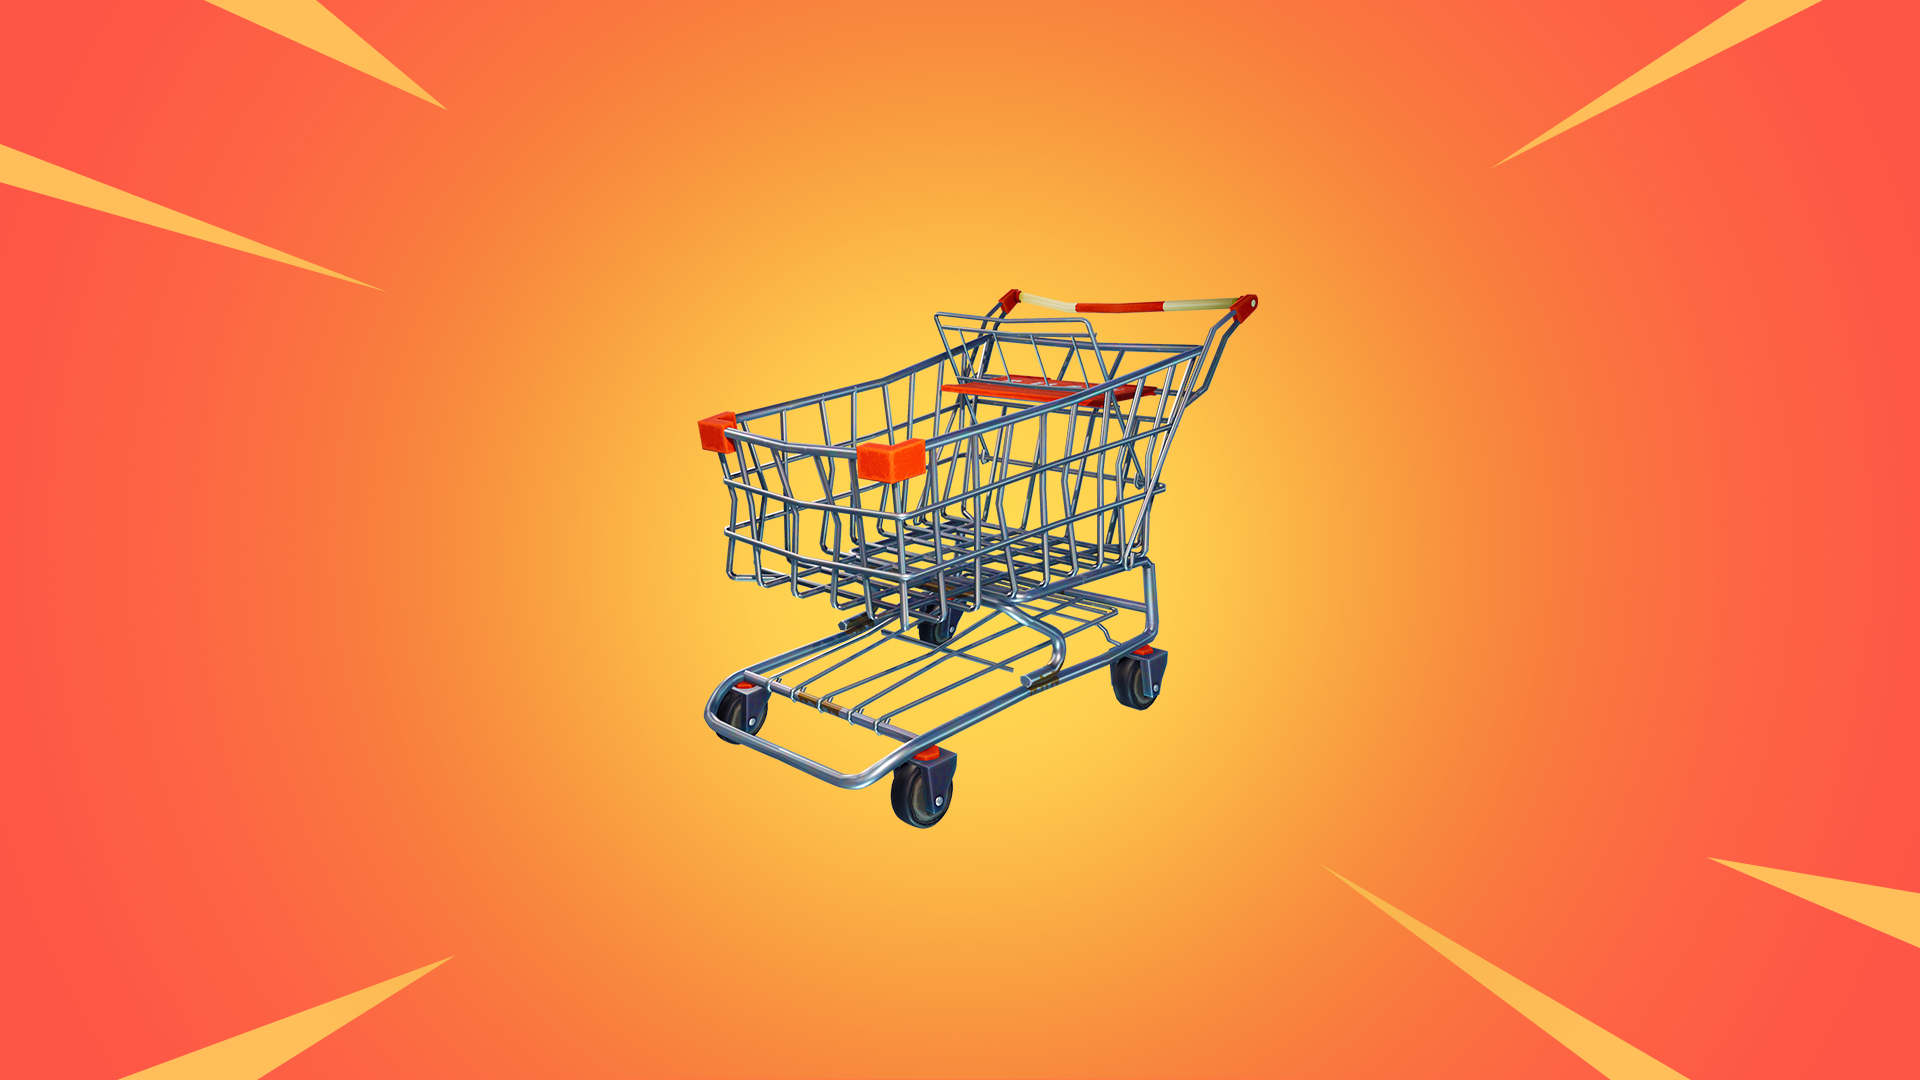 Dit is er nieuw in Fortnite V4.3!